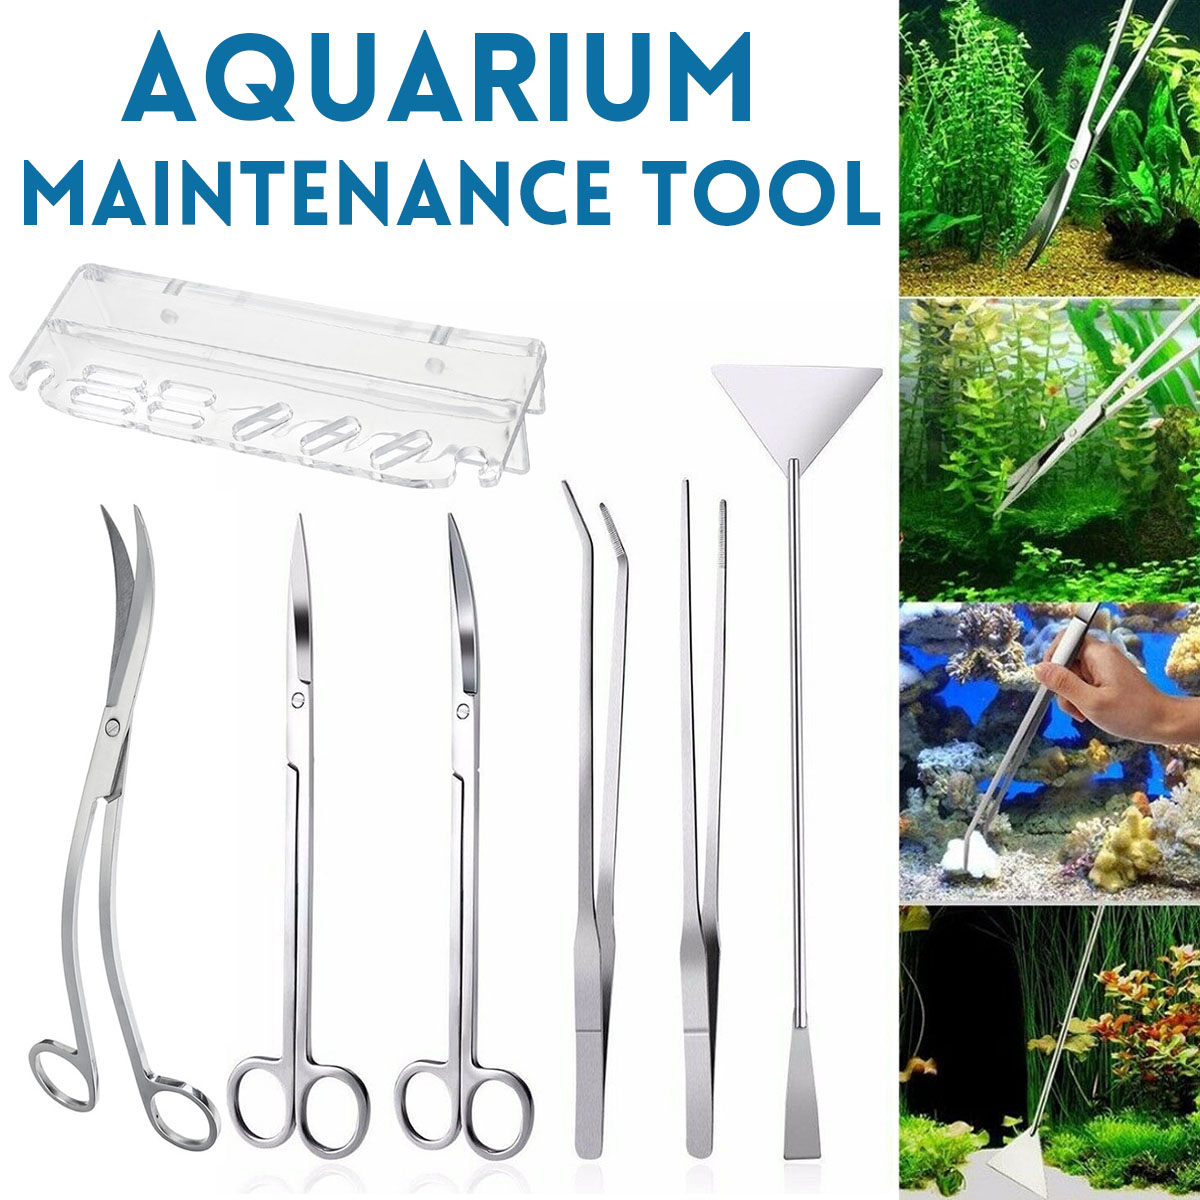 Aquarium Maintenance Tools Kit Tweezers Curve Scissor Storage Holder Stainless Steel Cleaning Tool For Fish Tank Water Plants